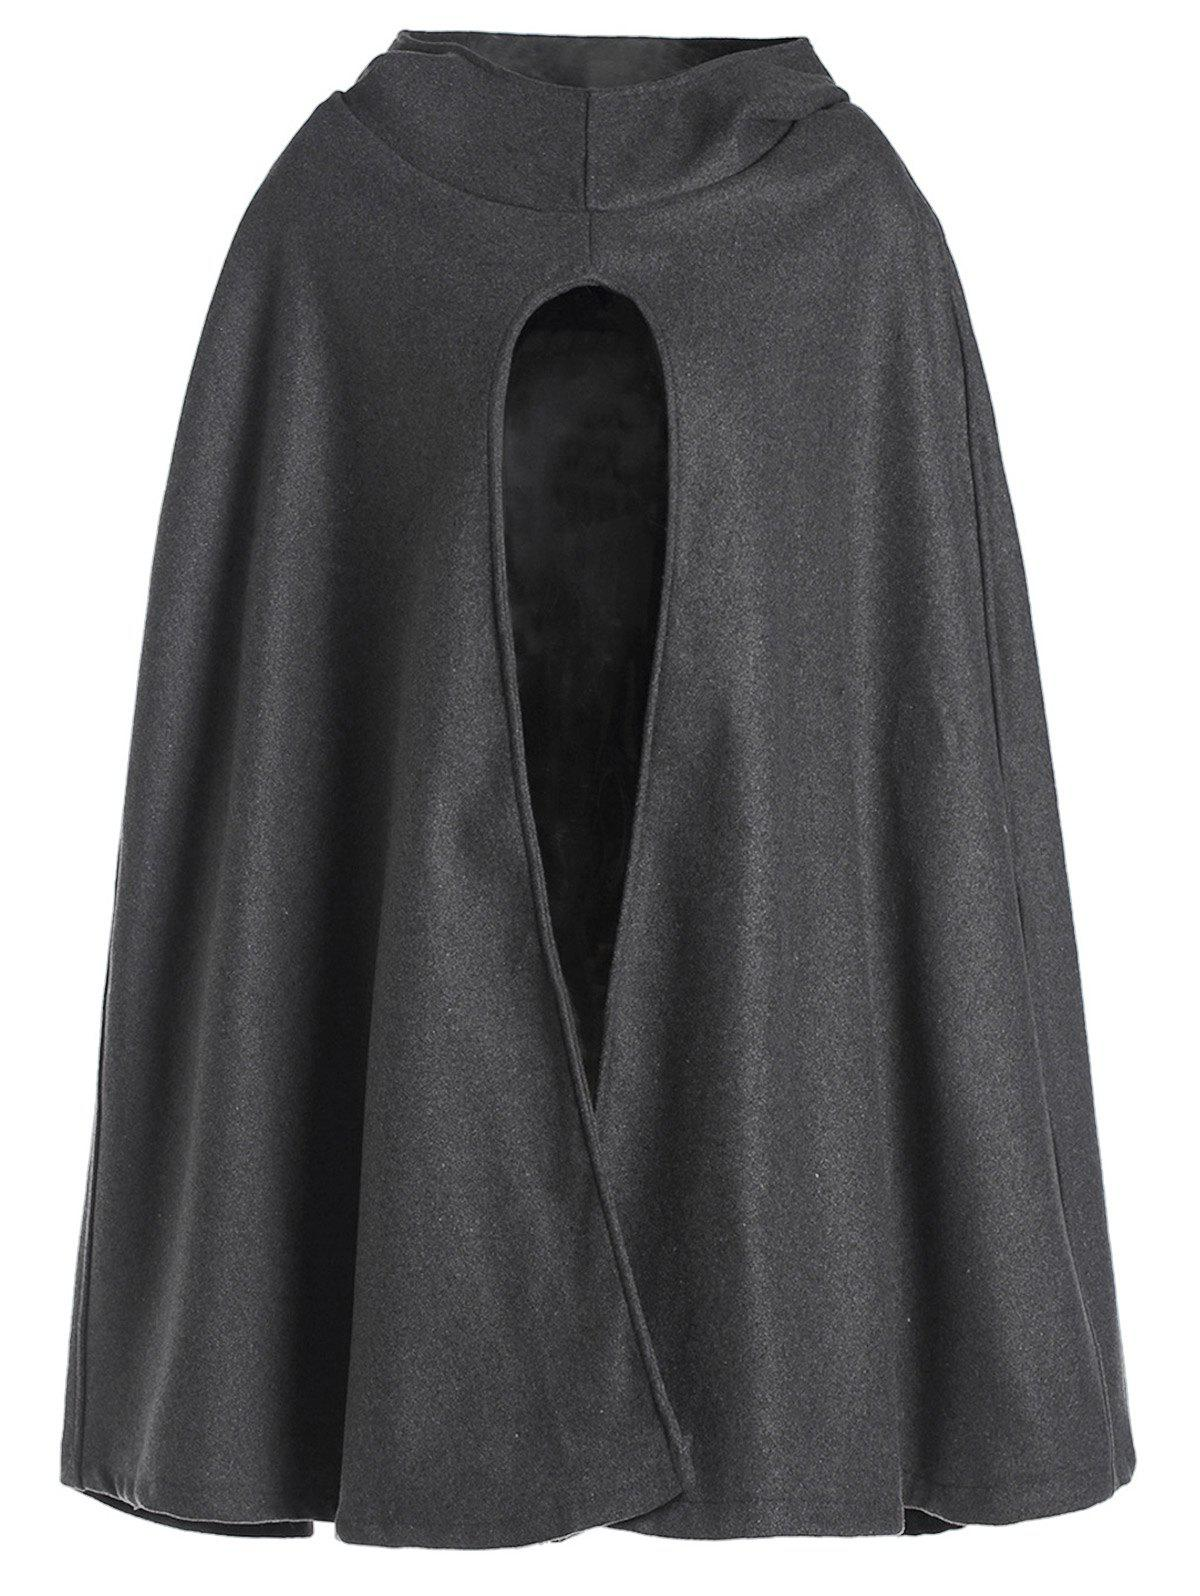 Fashionable Solid Color Hooded High Slit Loose Cloak For Women mo102 fashionable women s mixed spinning loose short cloak w tassel black